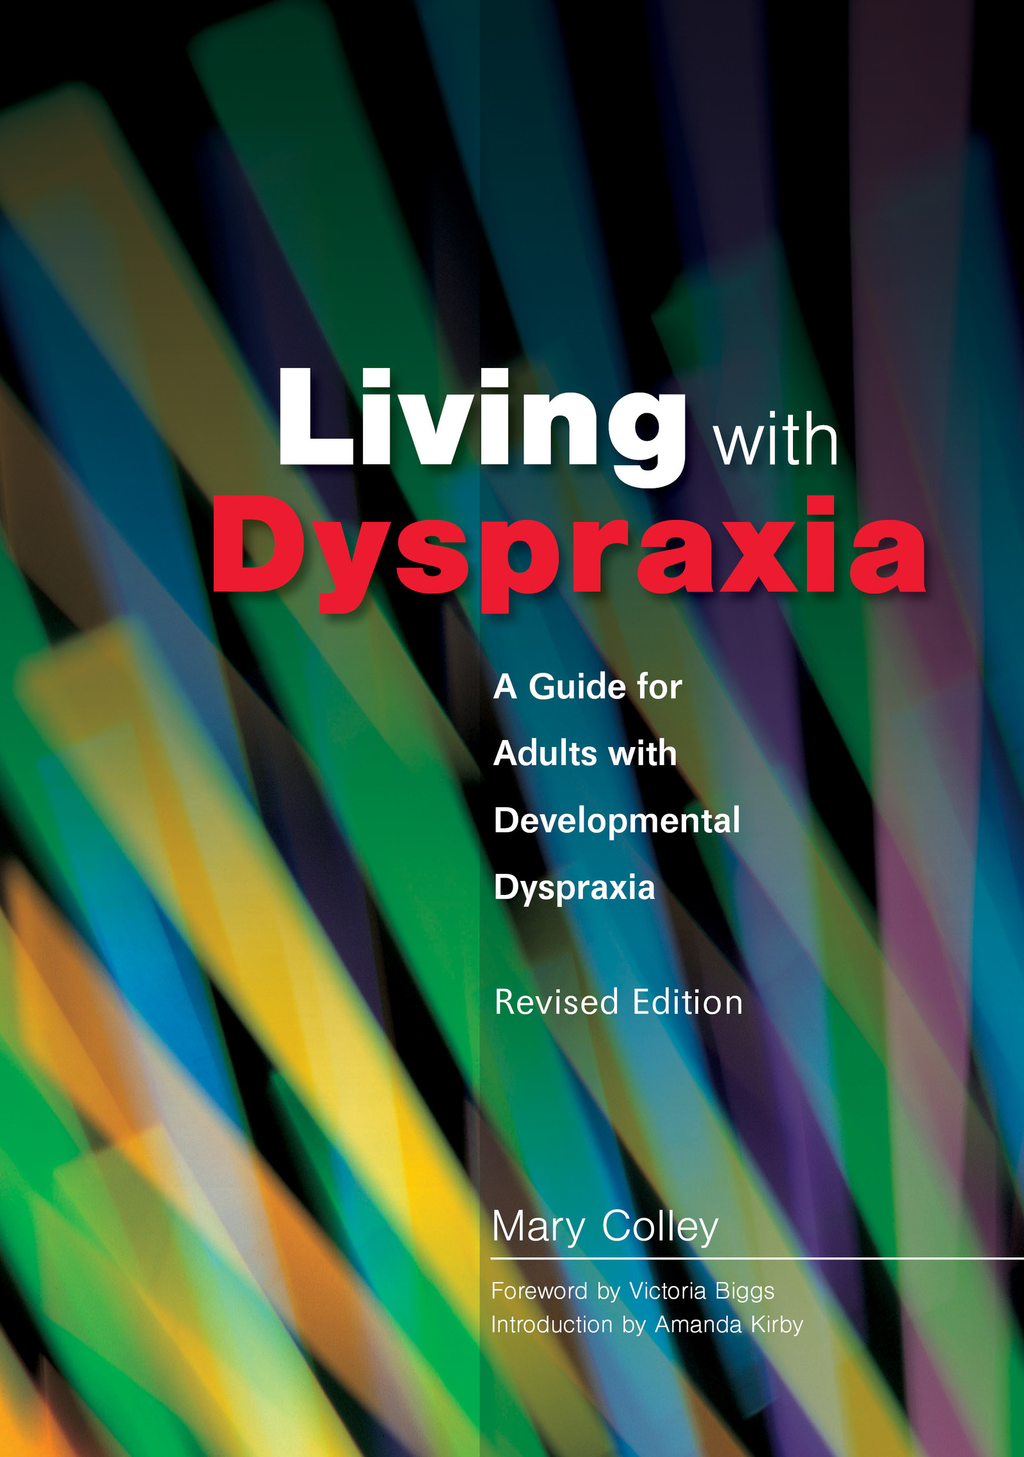 Living with Dyspraxia A Guide for Adults with Developmental Dyspraxia - Revised Edition